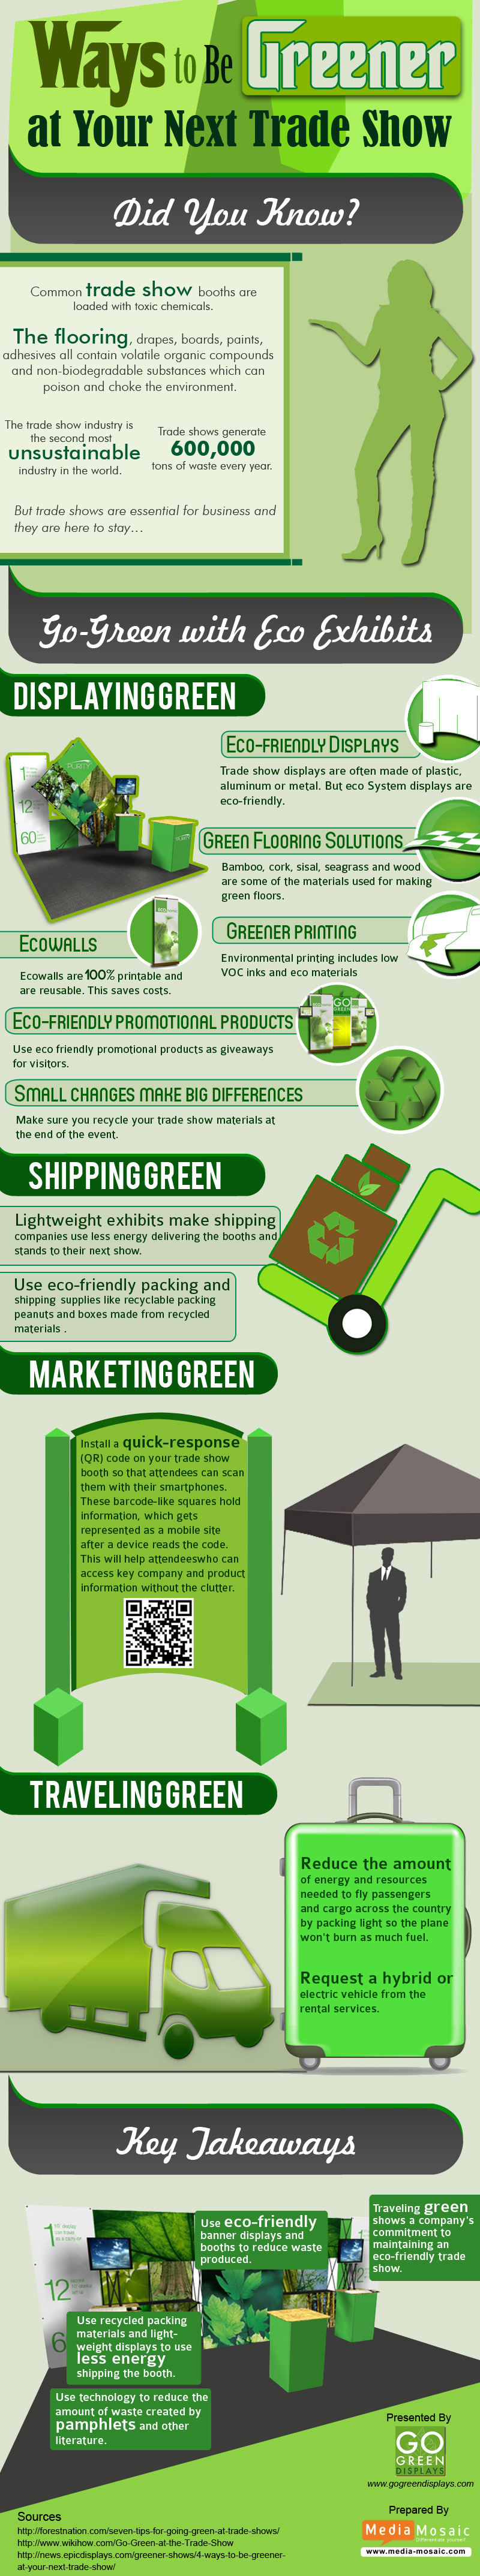 GogreenDisplays- Info Graphic